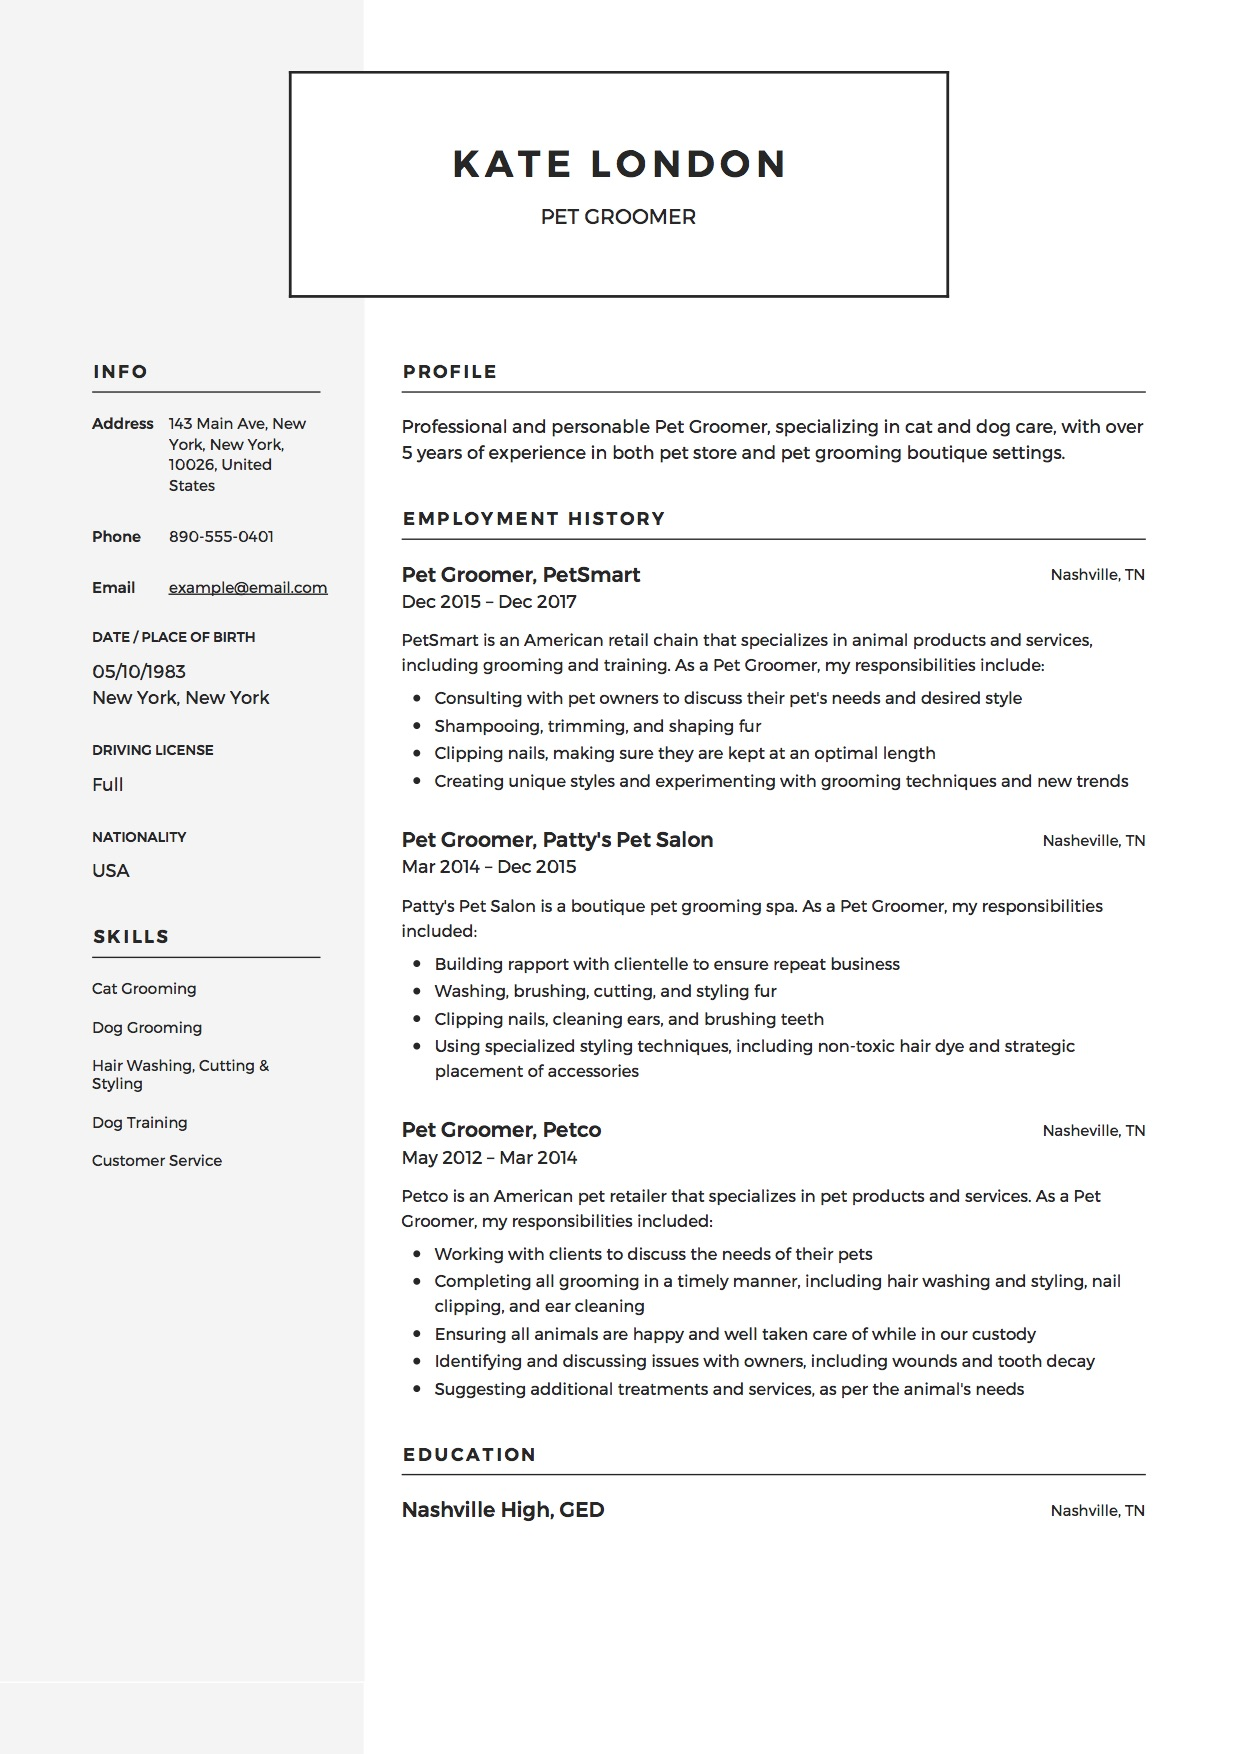 Pet Groomer Resume Sample  Dog Groomer Resume